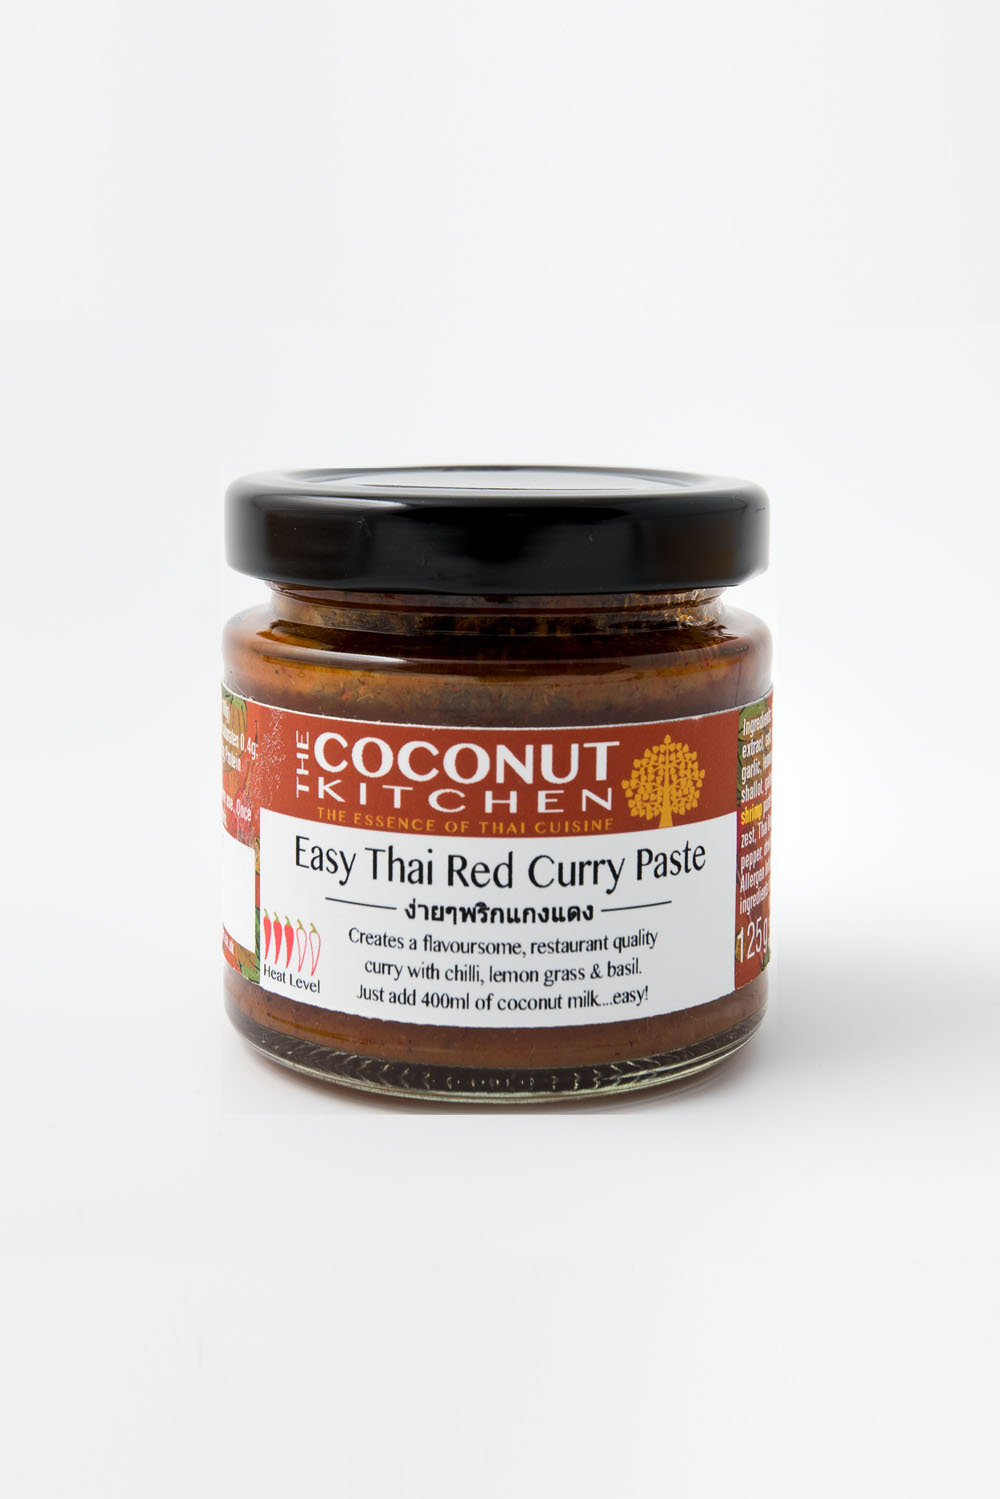 Thai Kitchen Red Curry Paste Review